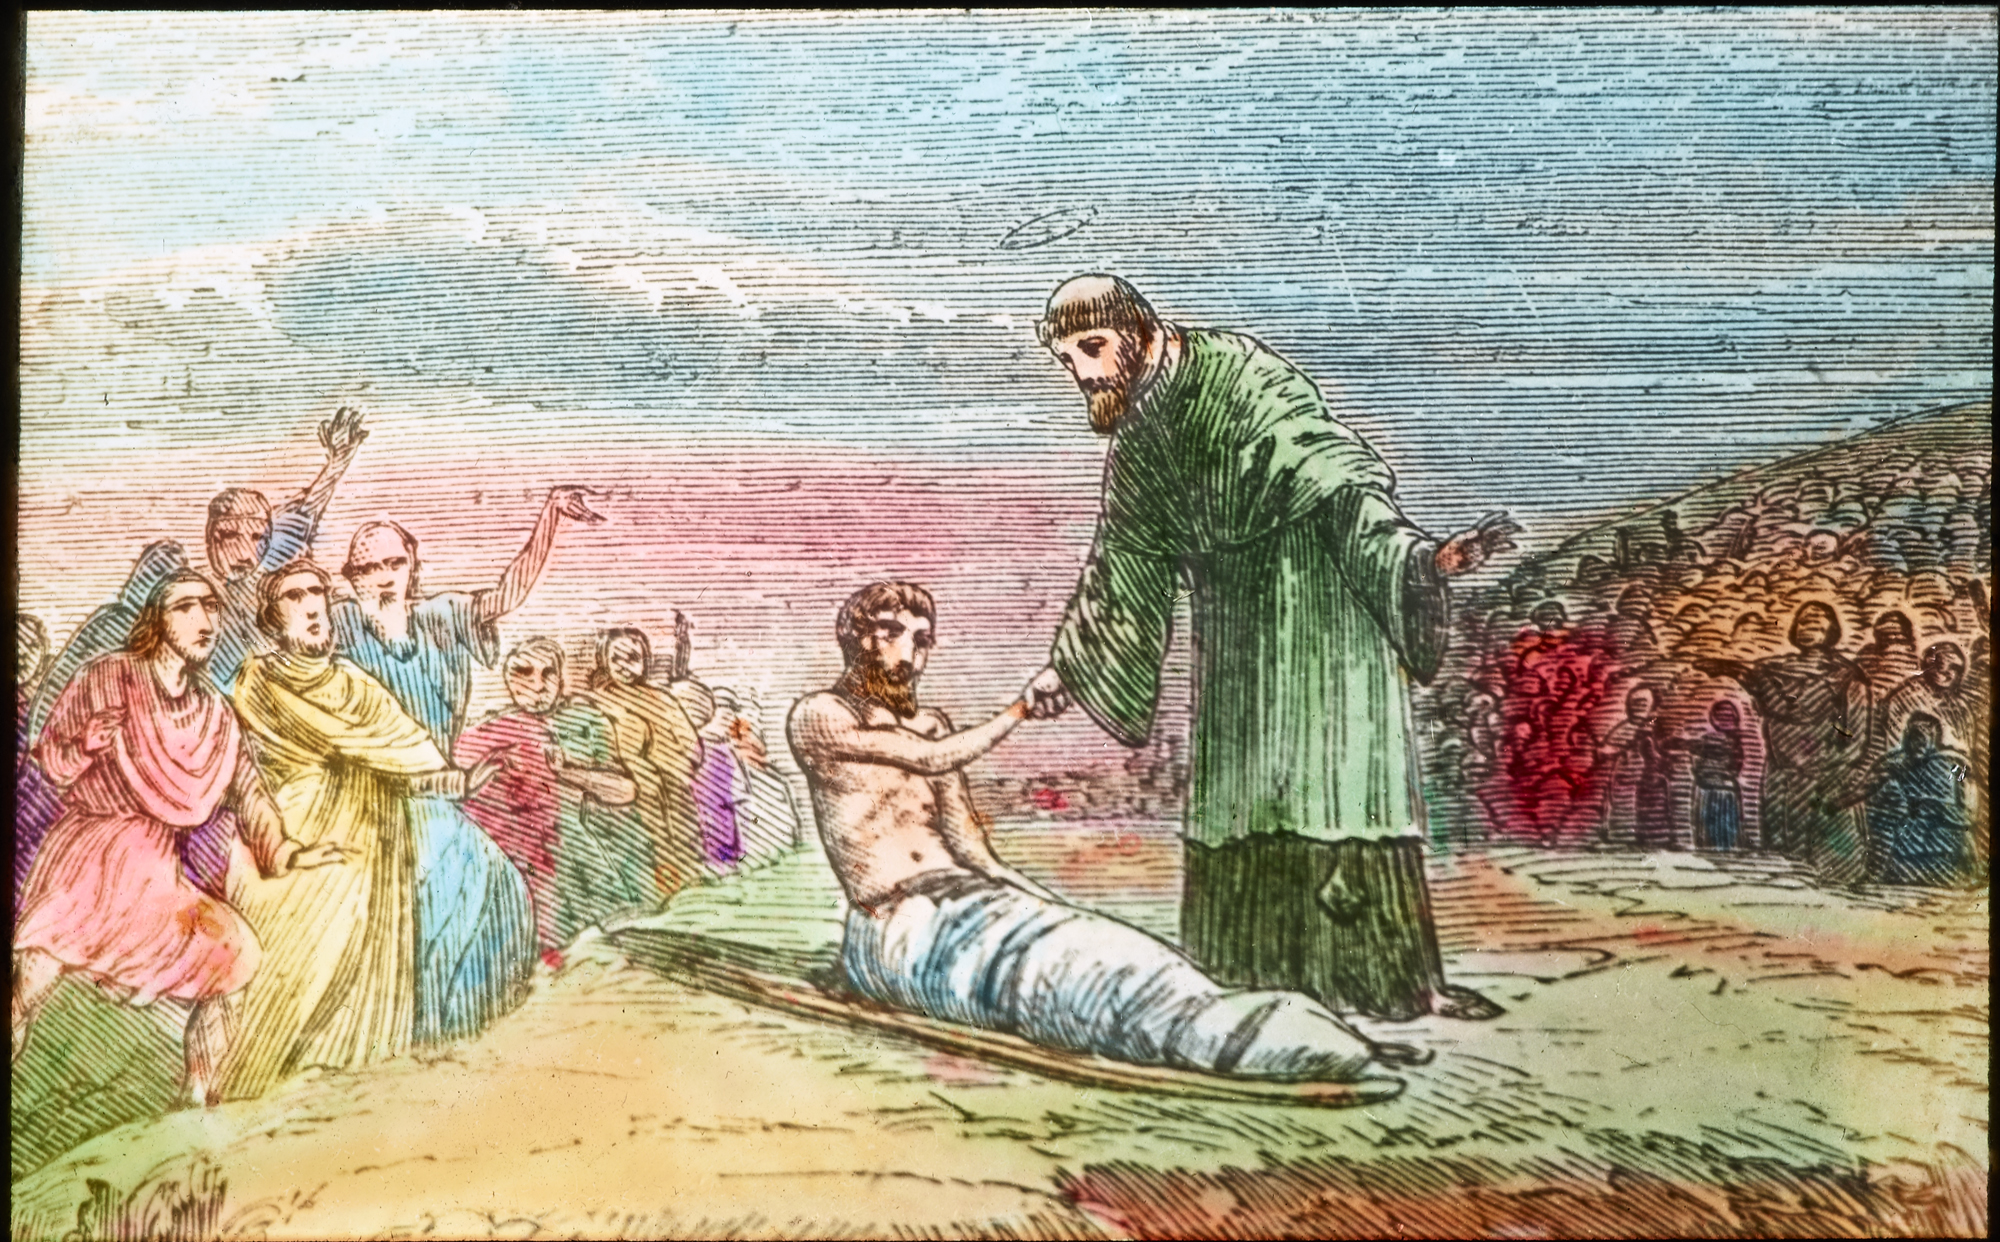 St. Patrick healing a sick man while the crowd stand by and marvel at his faith!